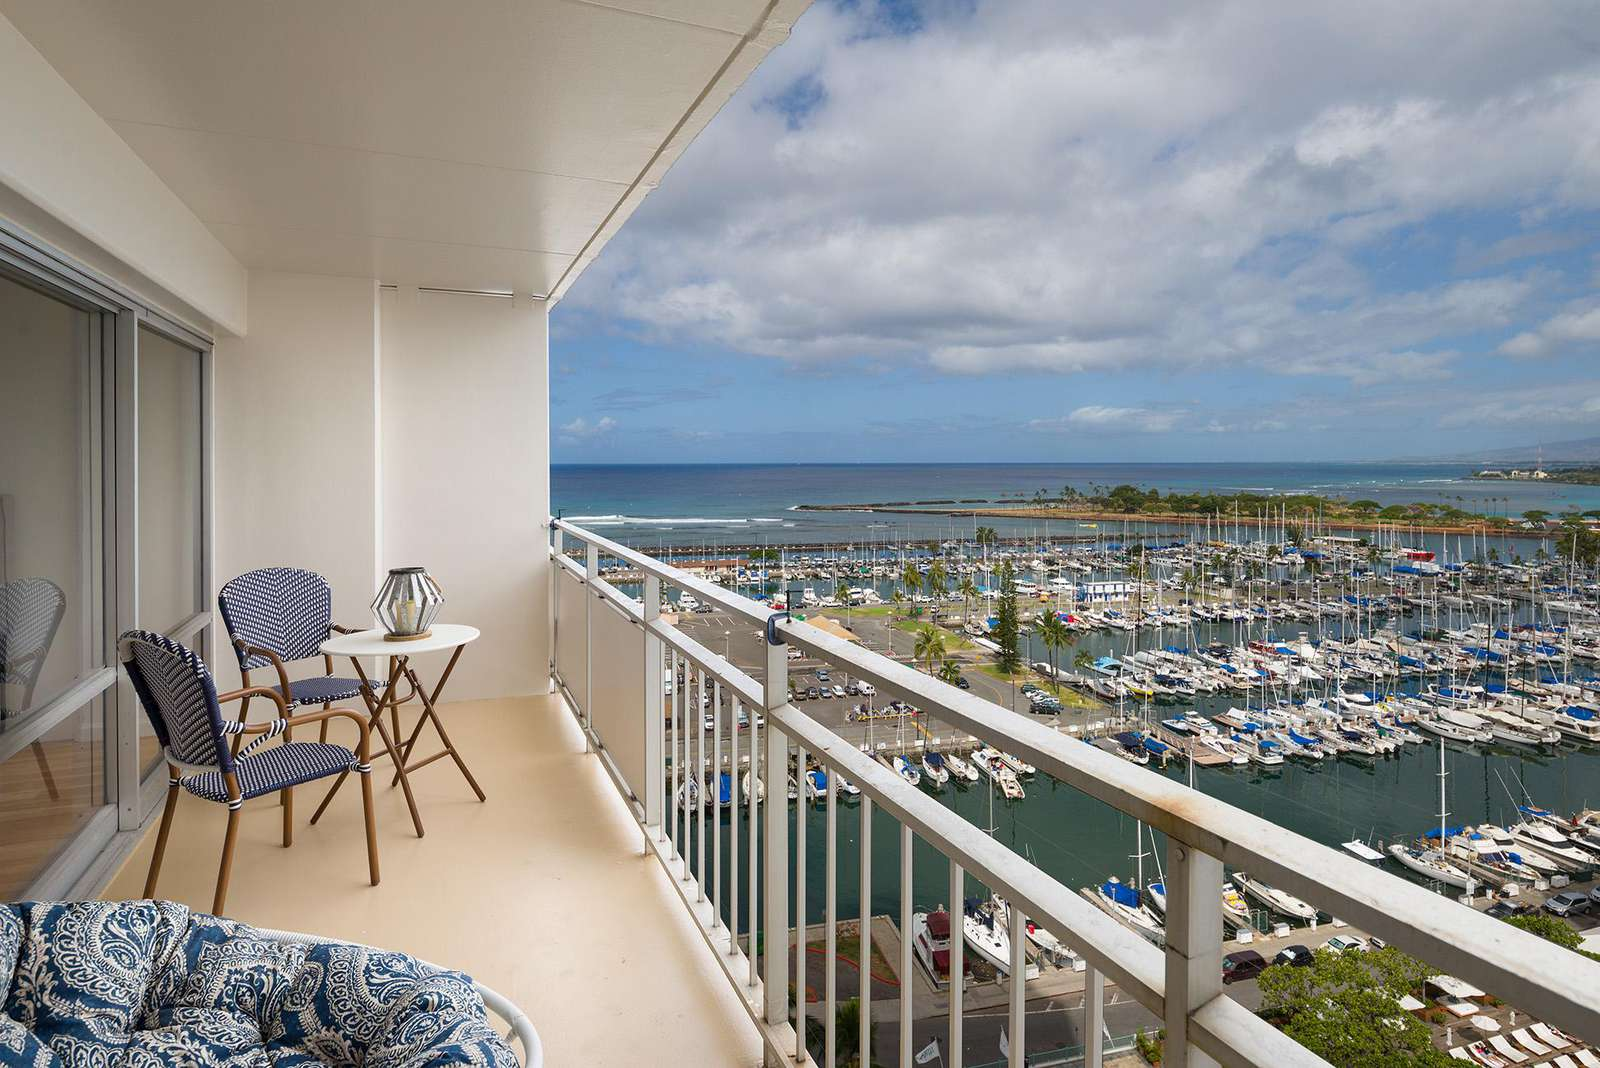 Incredible Ocean Views Over Waikiki Yacht Harbor from the Entire Suite!